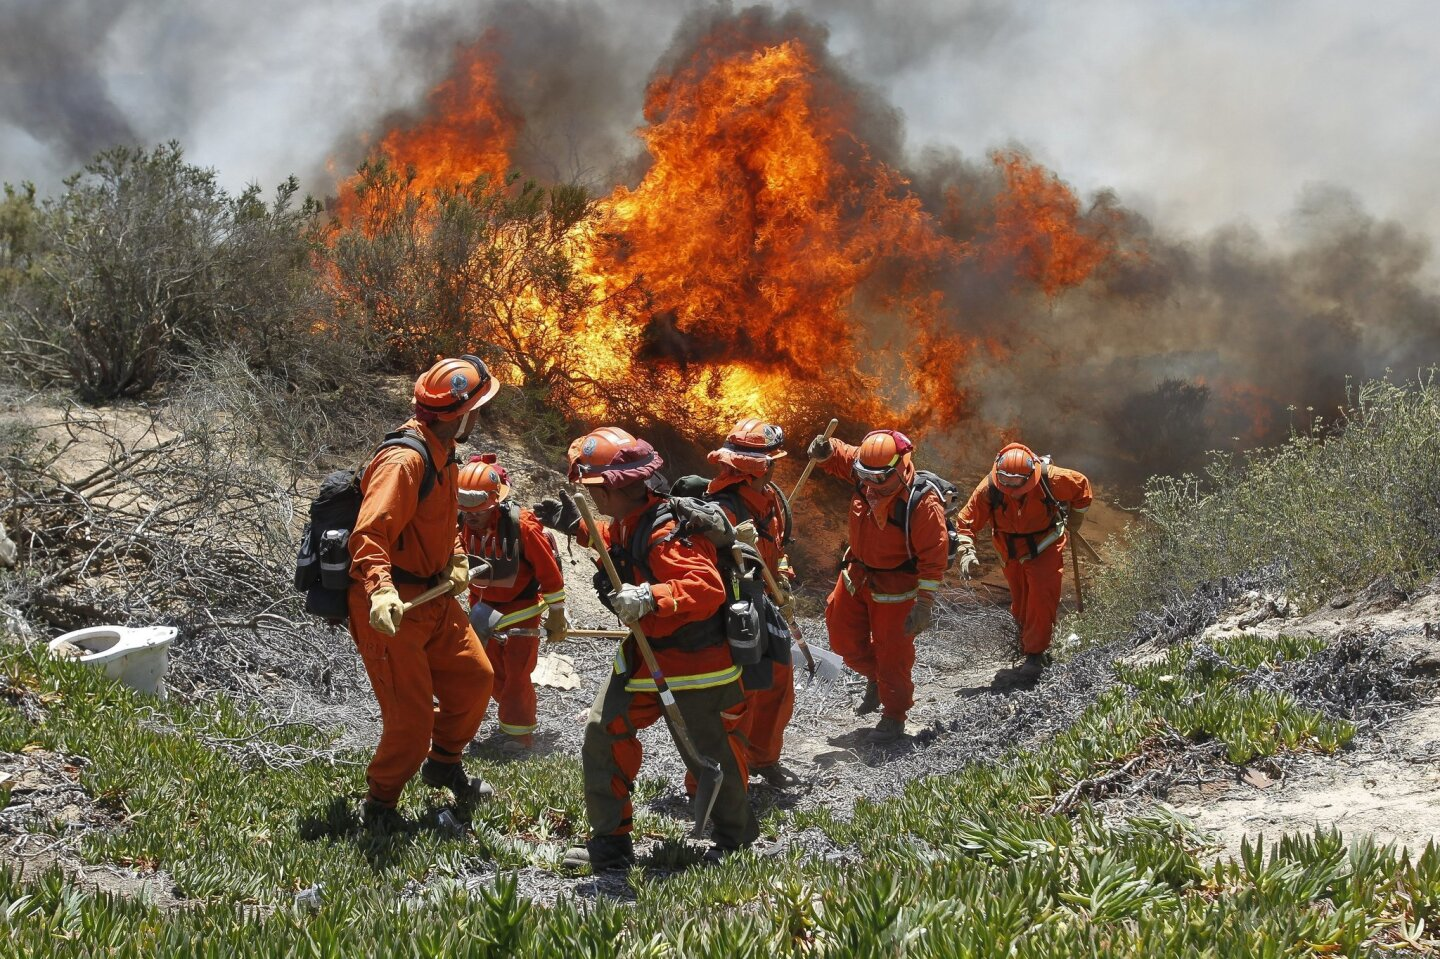 Inmates from Oak Glen Fire Camp in Riverside retreat to higher ground as the flames start move close to them while they work to control the fire near Oriole Court in Carlsbad on Wednesday.